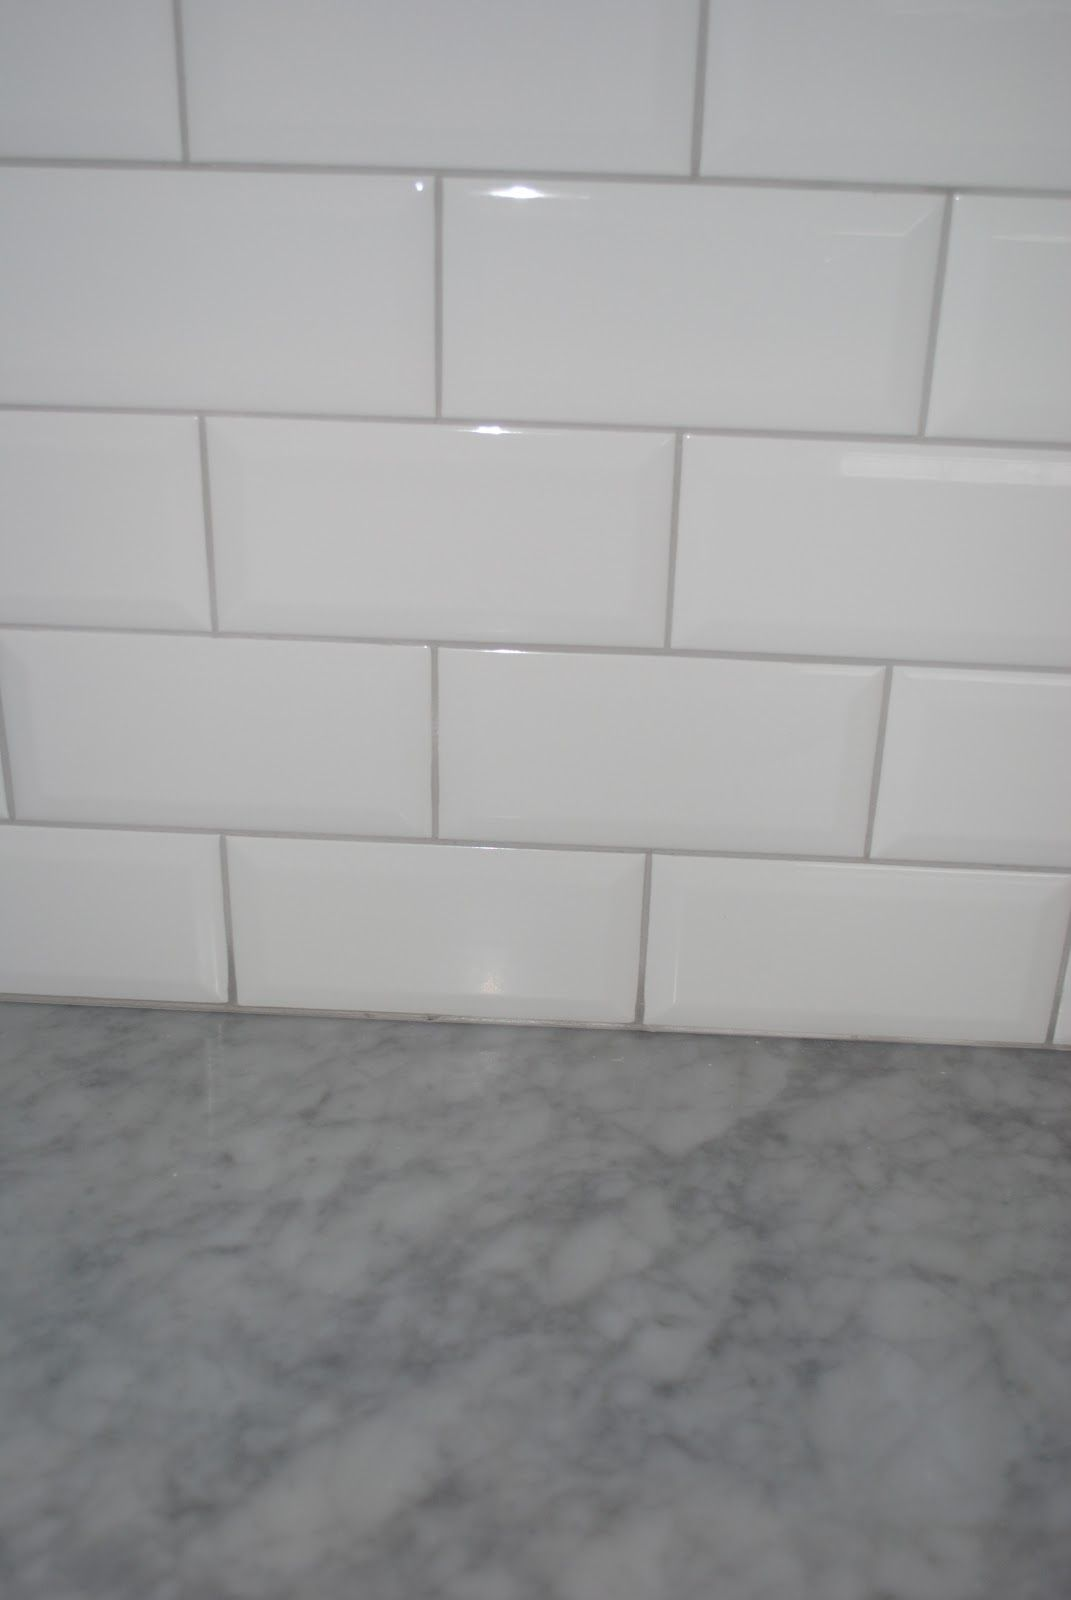 Grout Contrast Lighter Than This I Don T Want White On White But I Don T Wa White Subway Tiles Kitchen Backsplash White Subway Tile Kitchen Grey Countertops